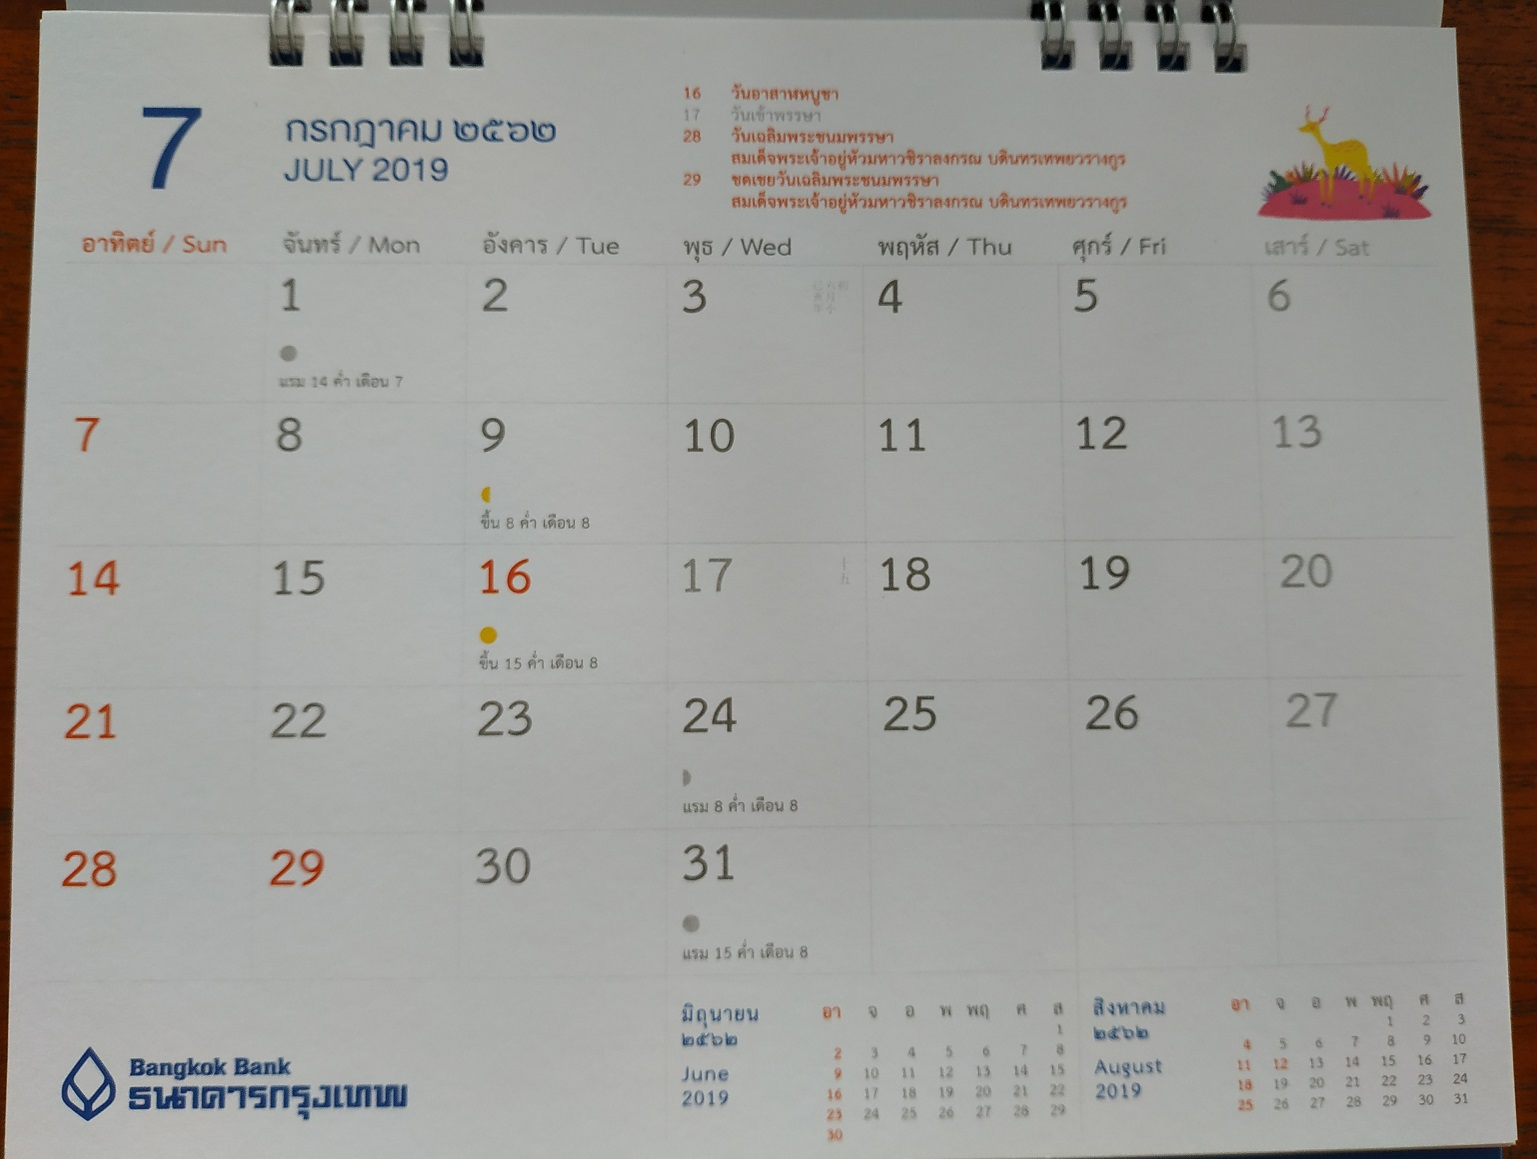 Bangkok Bank Thai Table calendar 2019/ 2662 July